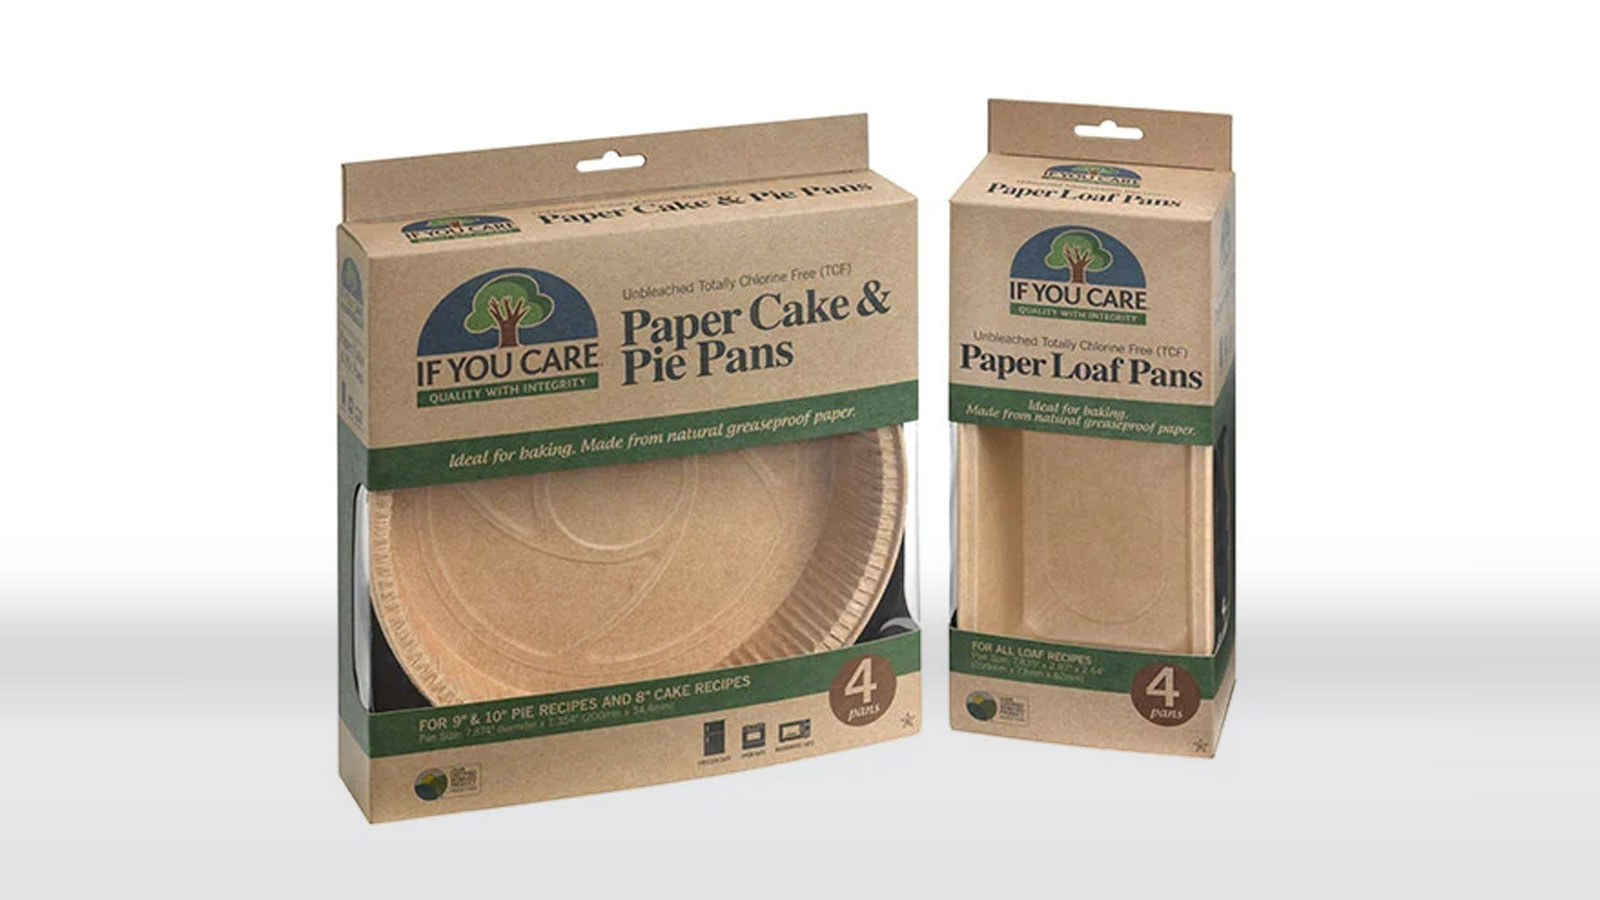 Paper baking products in packaged boxes